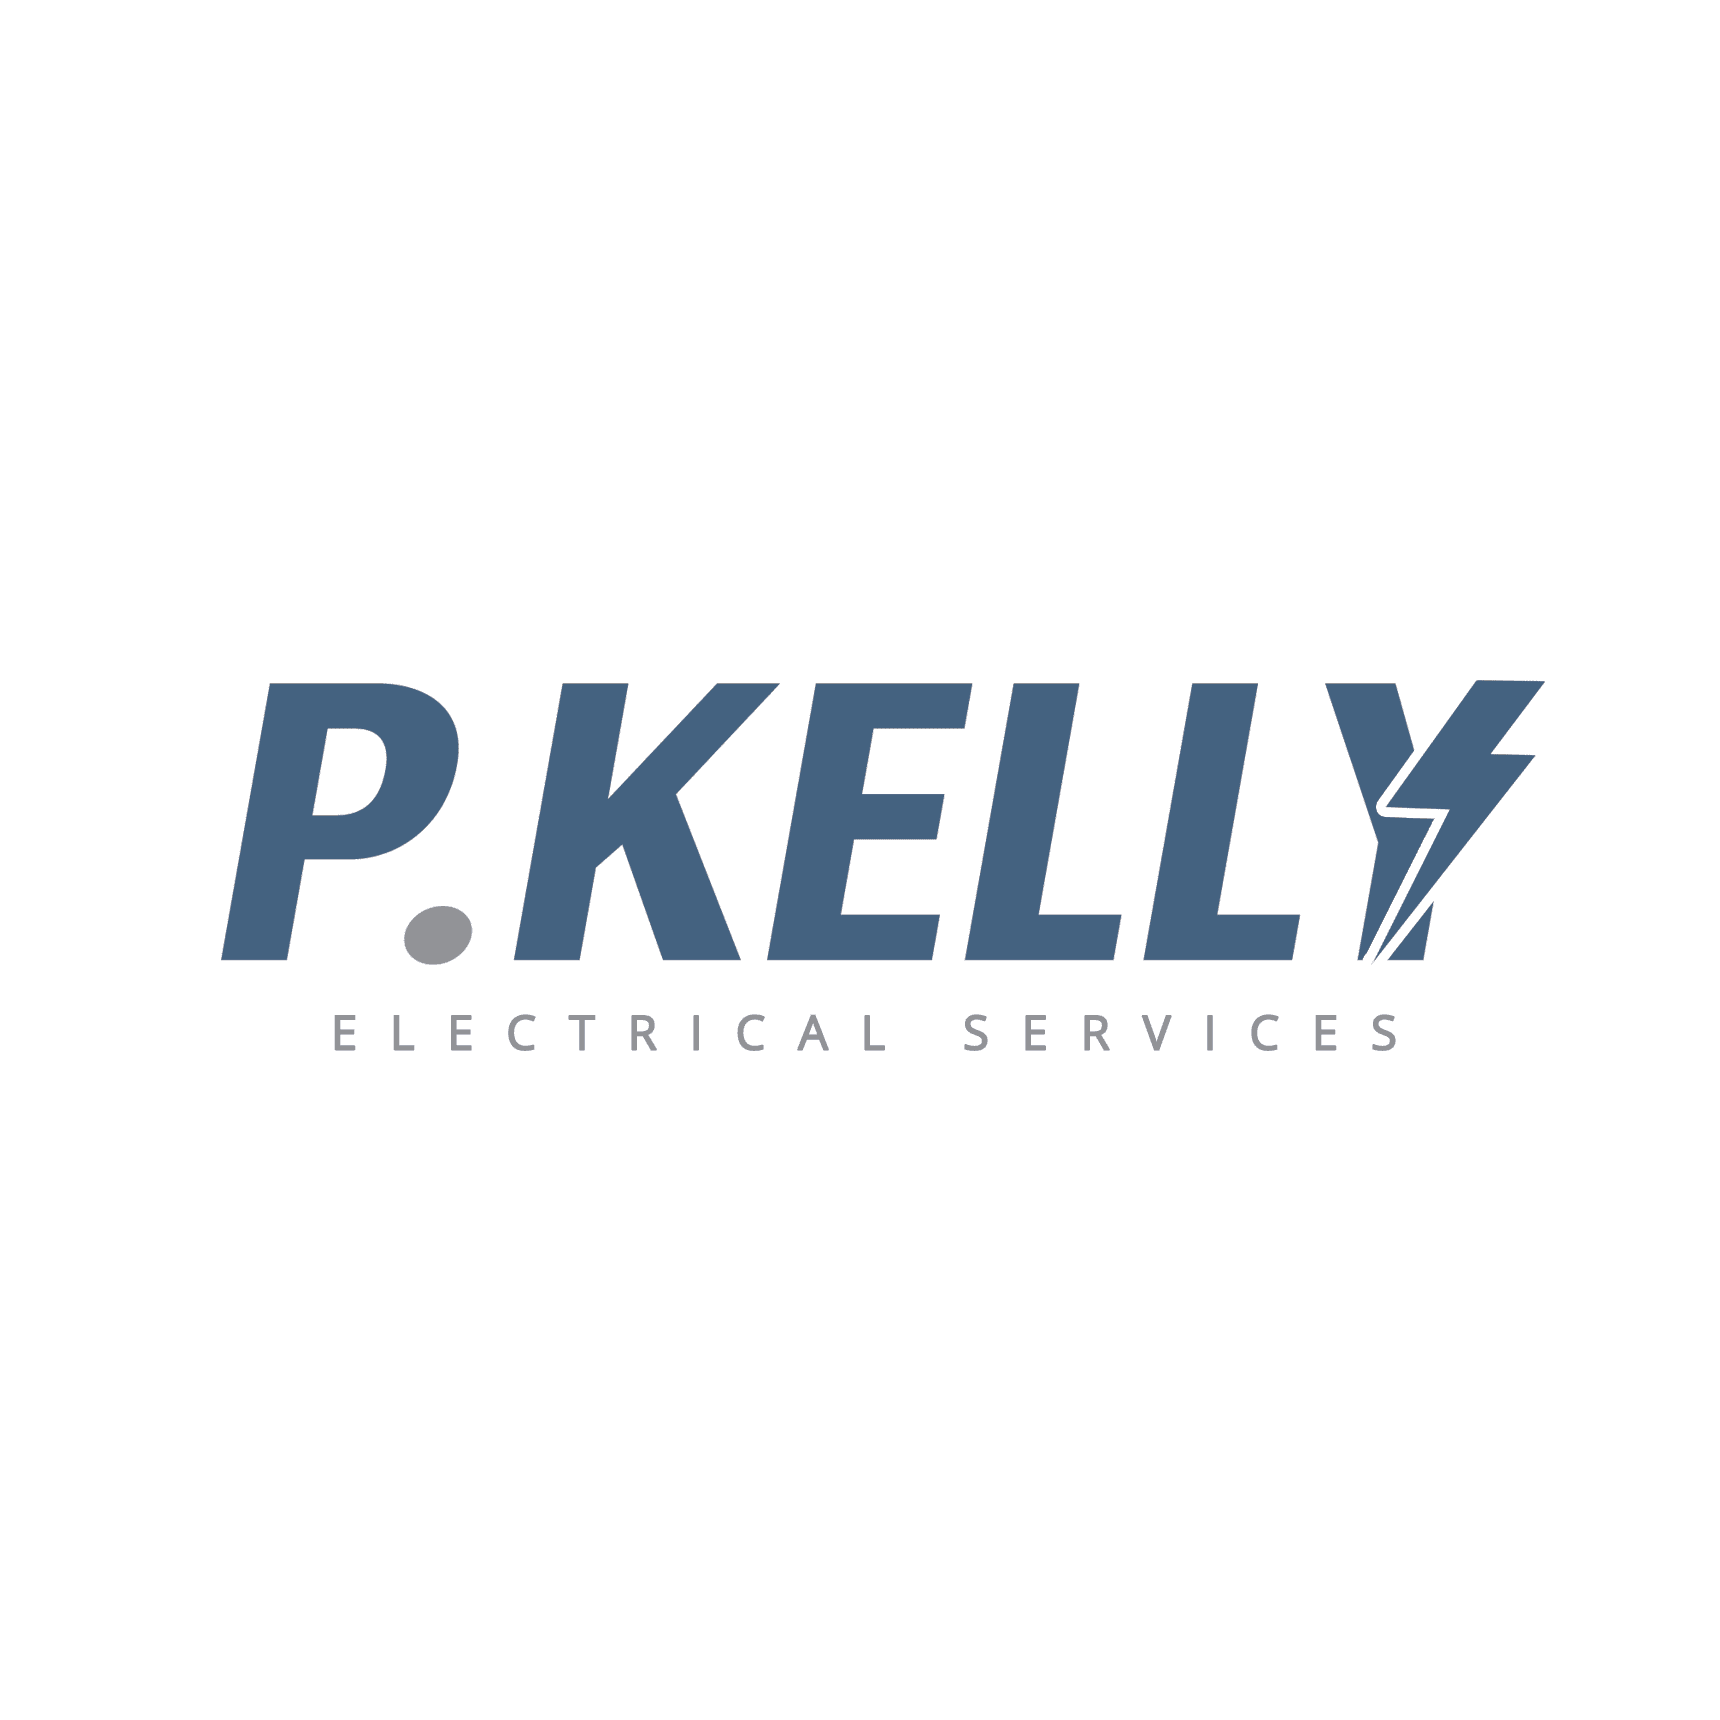 Pkelly Electrical Services